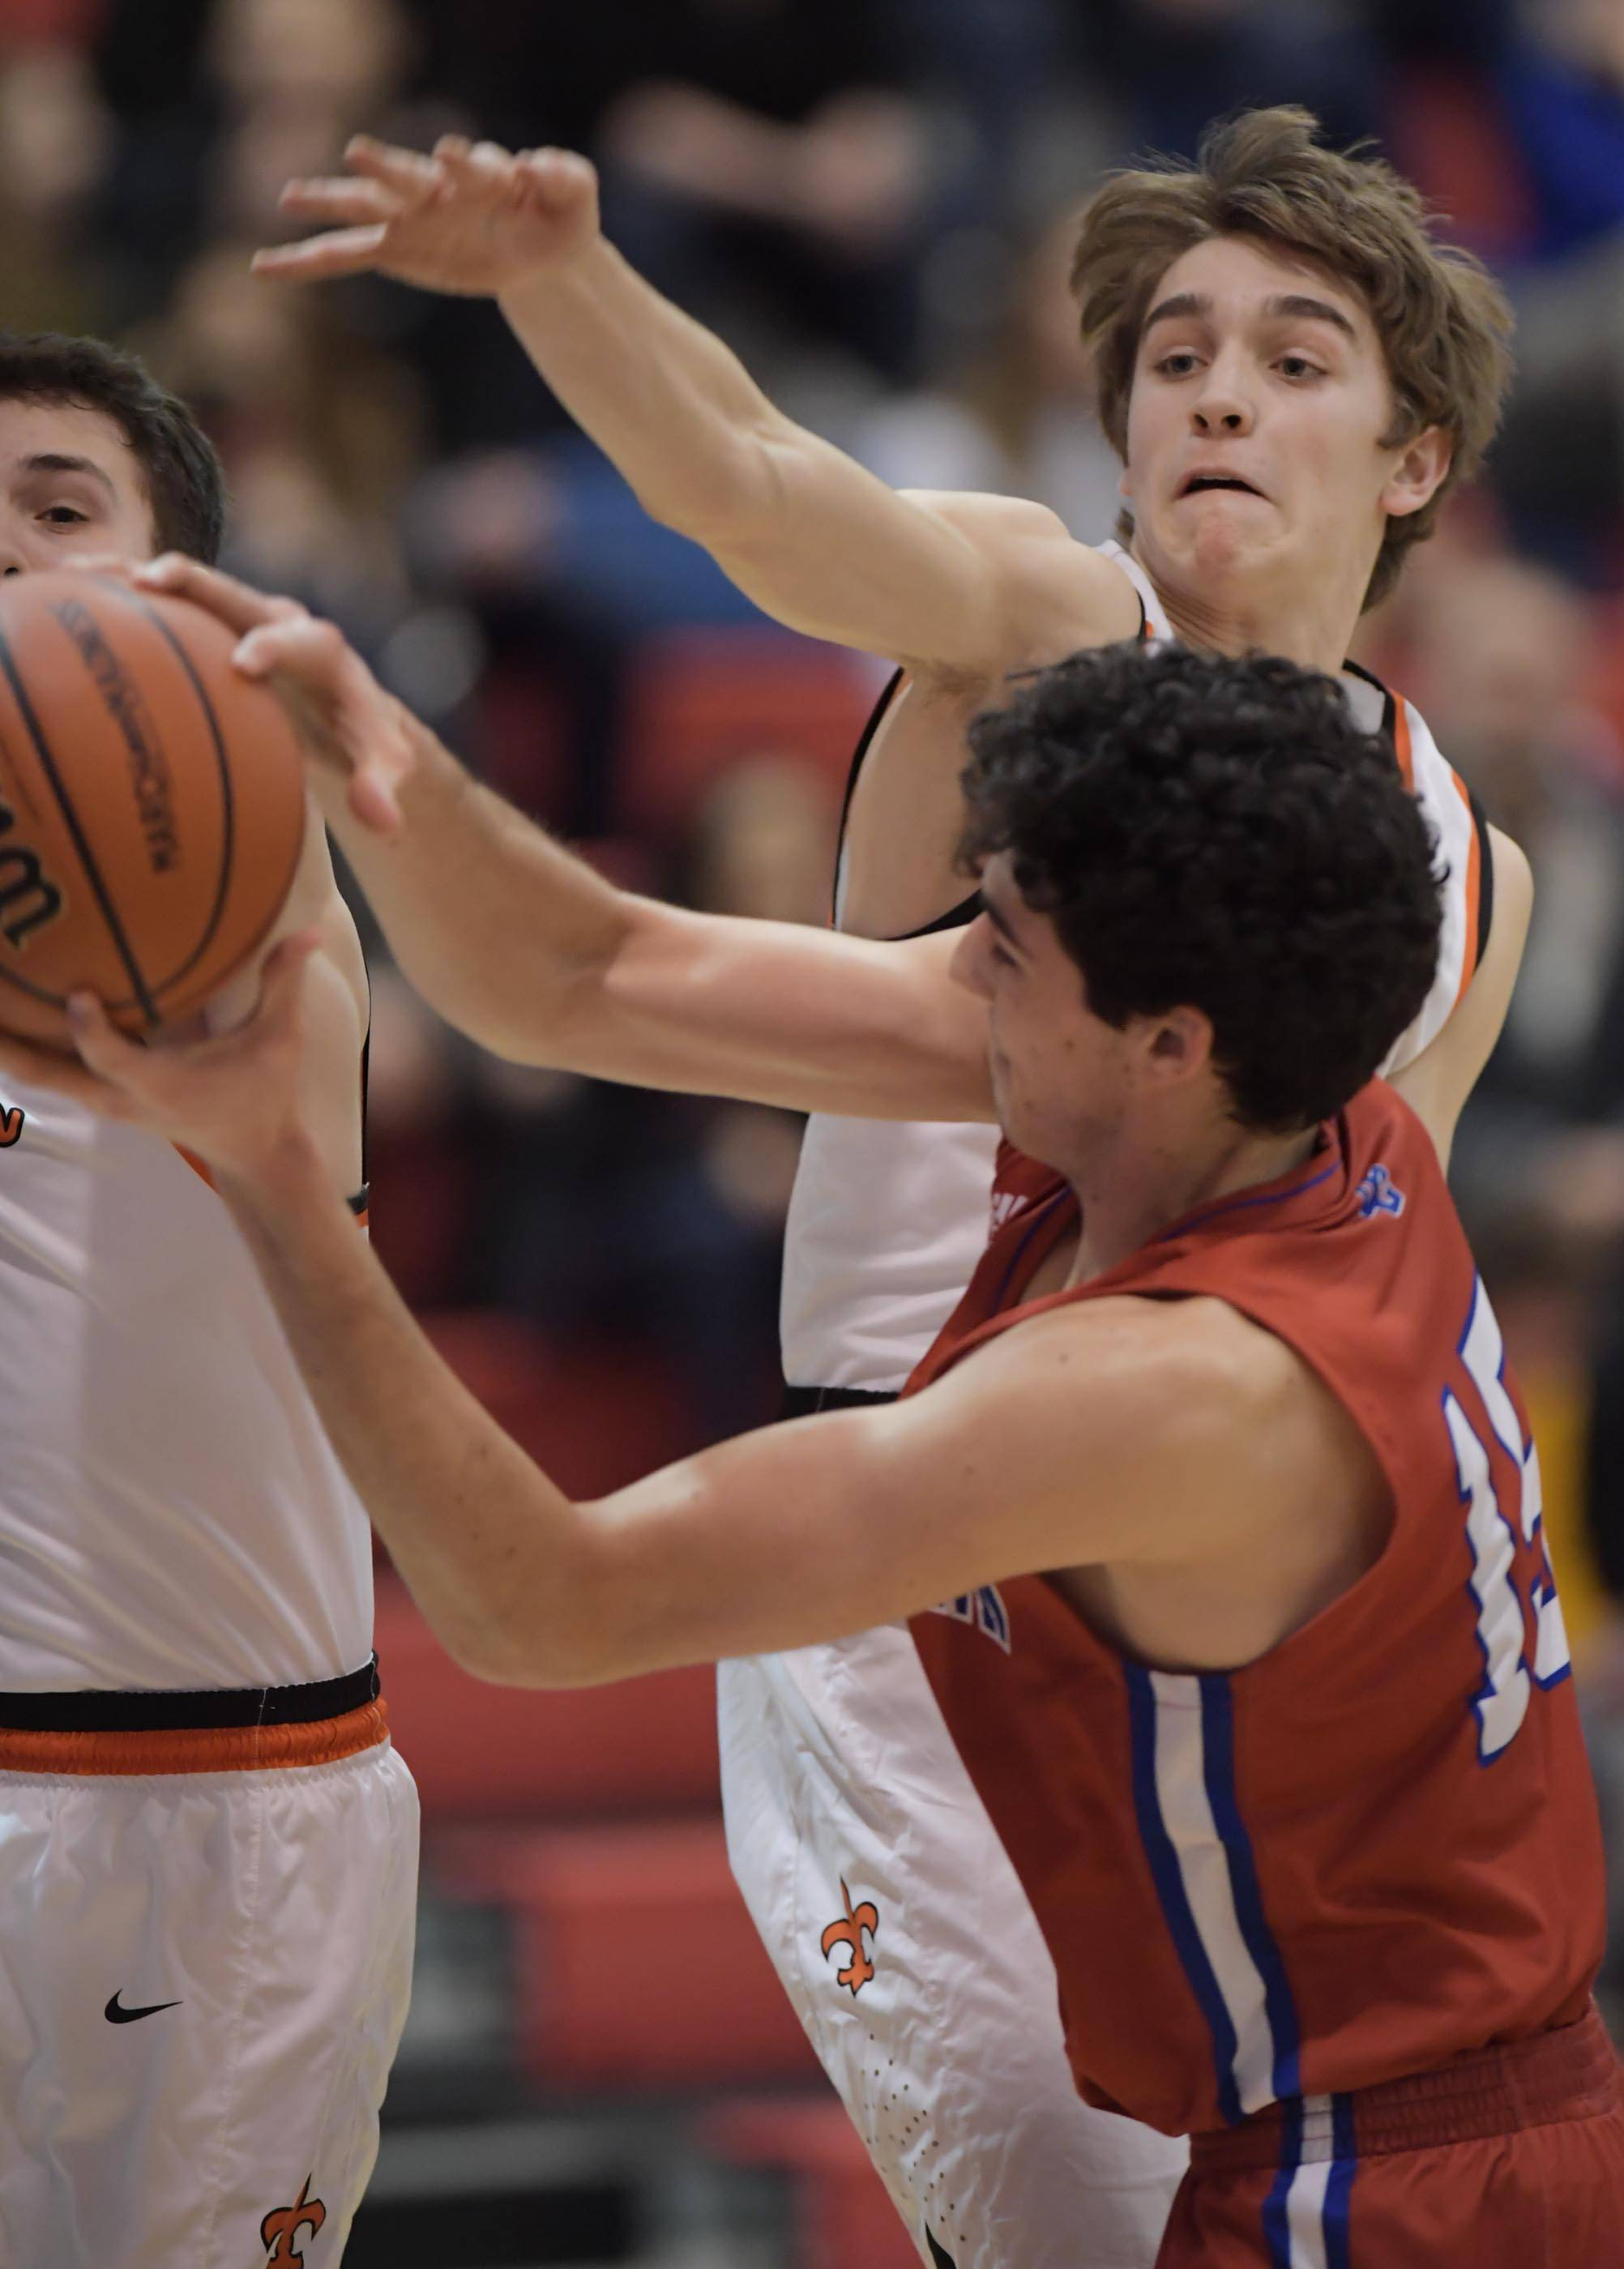 St. Charles East's Mark Musial disrupts the play of Dundee-Crown's Gabriel Bergeron in the Class 4A Dundee-Crown boys basketball semifinal regional game Wednesday.